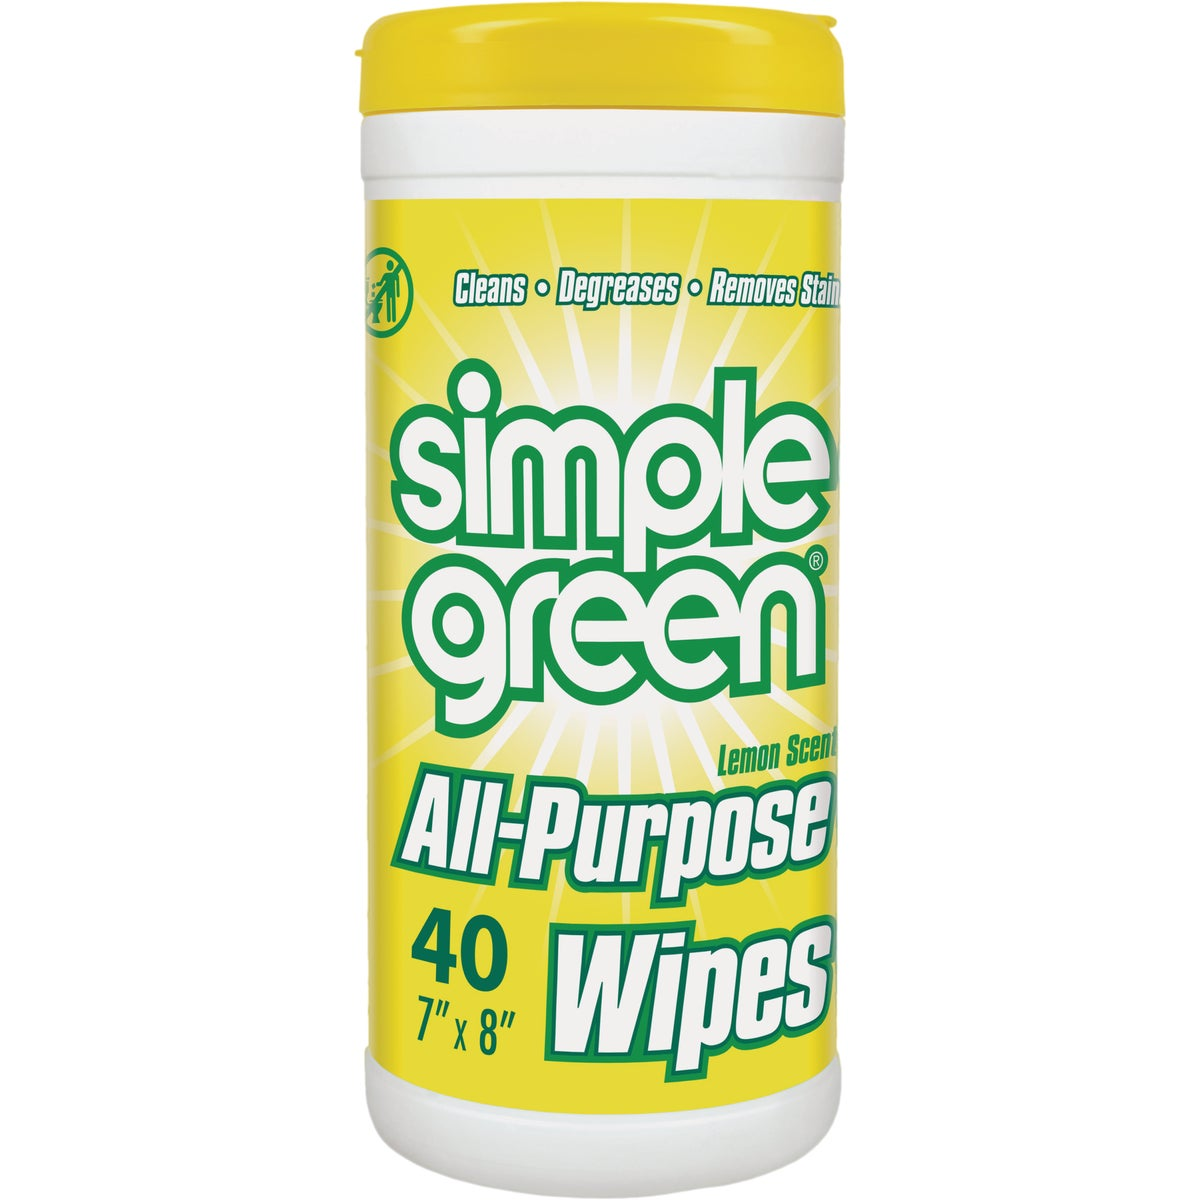 CLEANER WIPES - 3810001214101 by Sunshine Makers Inc